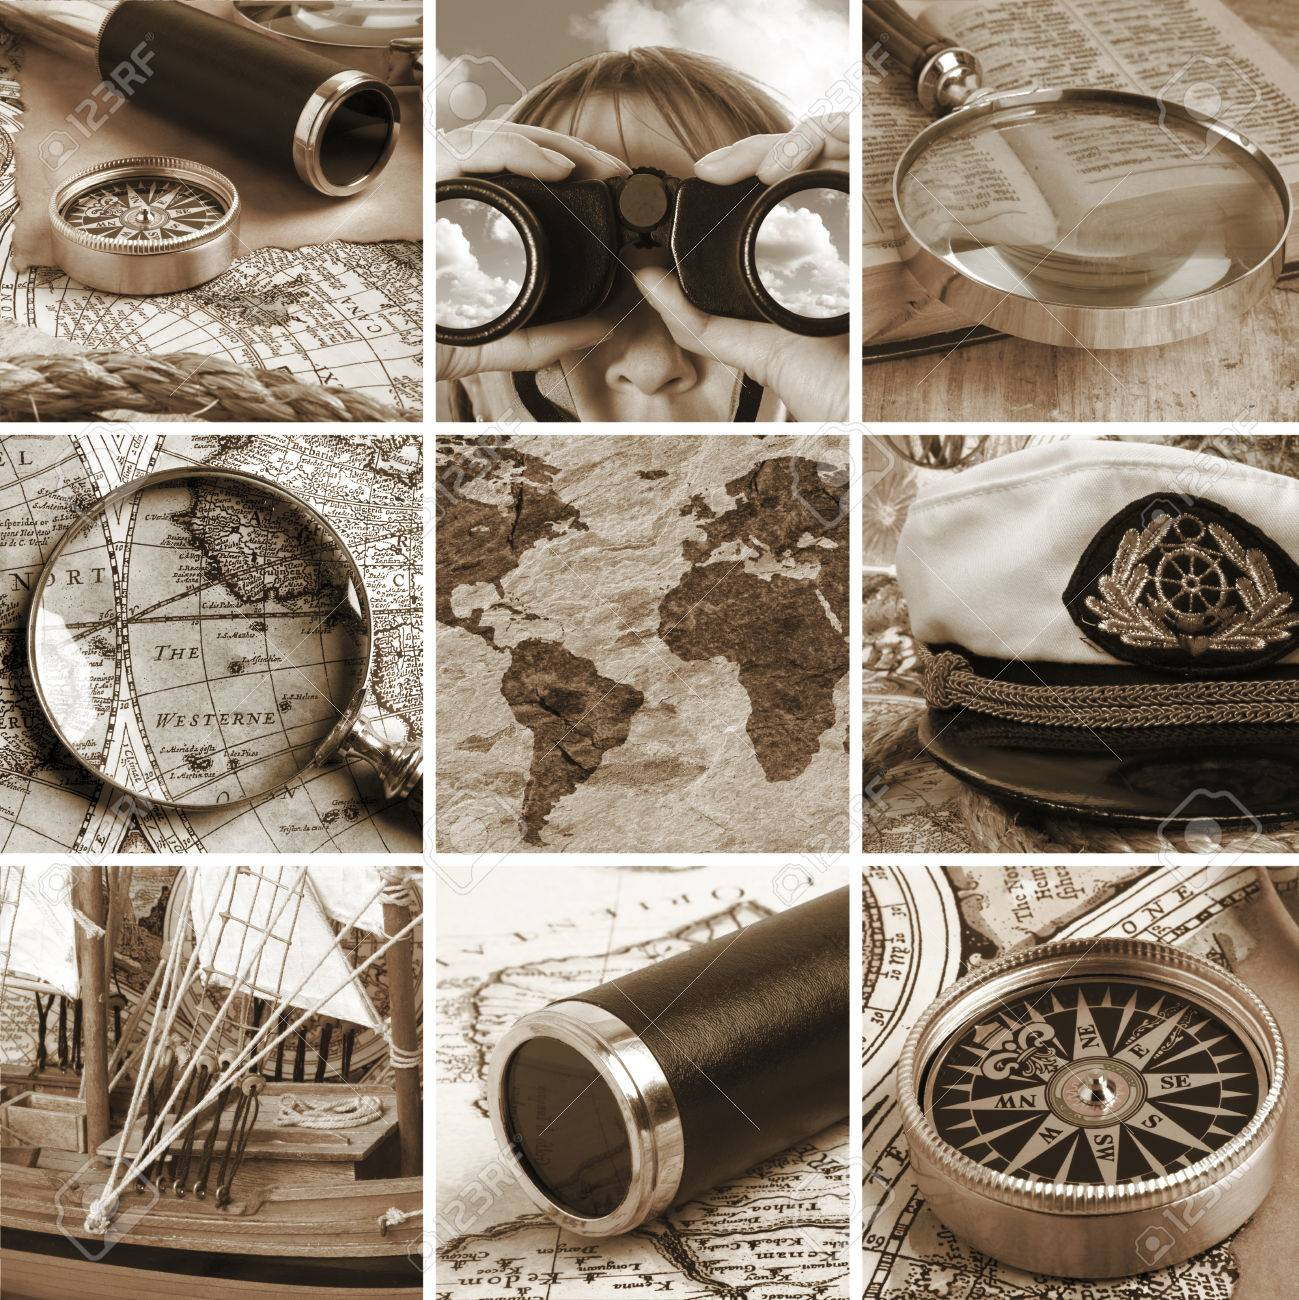 Marine Collage With Old Compasses And Maps Stock Photo, Picture ...